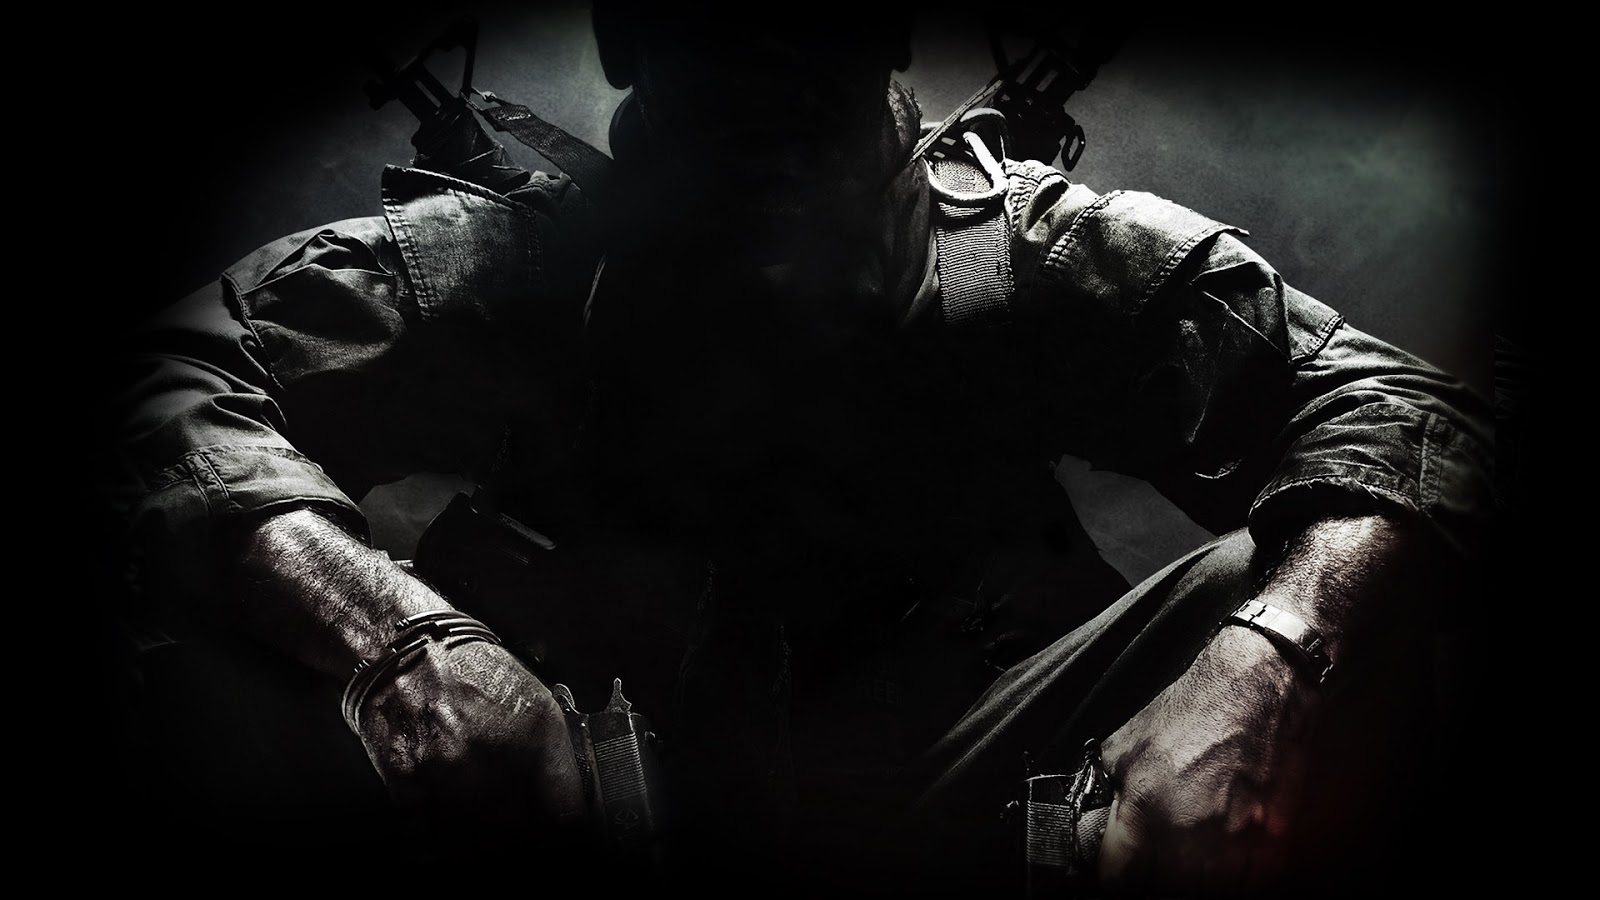 HD WALLPAPERS Call of Duty Black Ops HD Wallpapers 1600x900